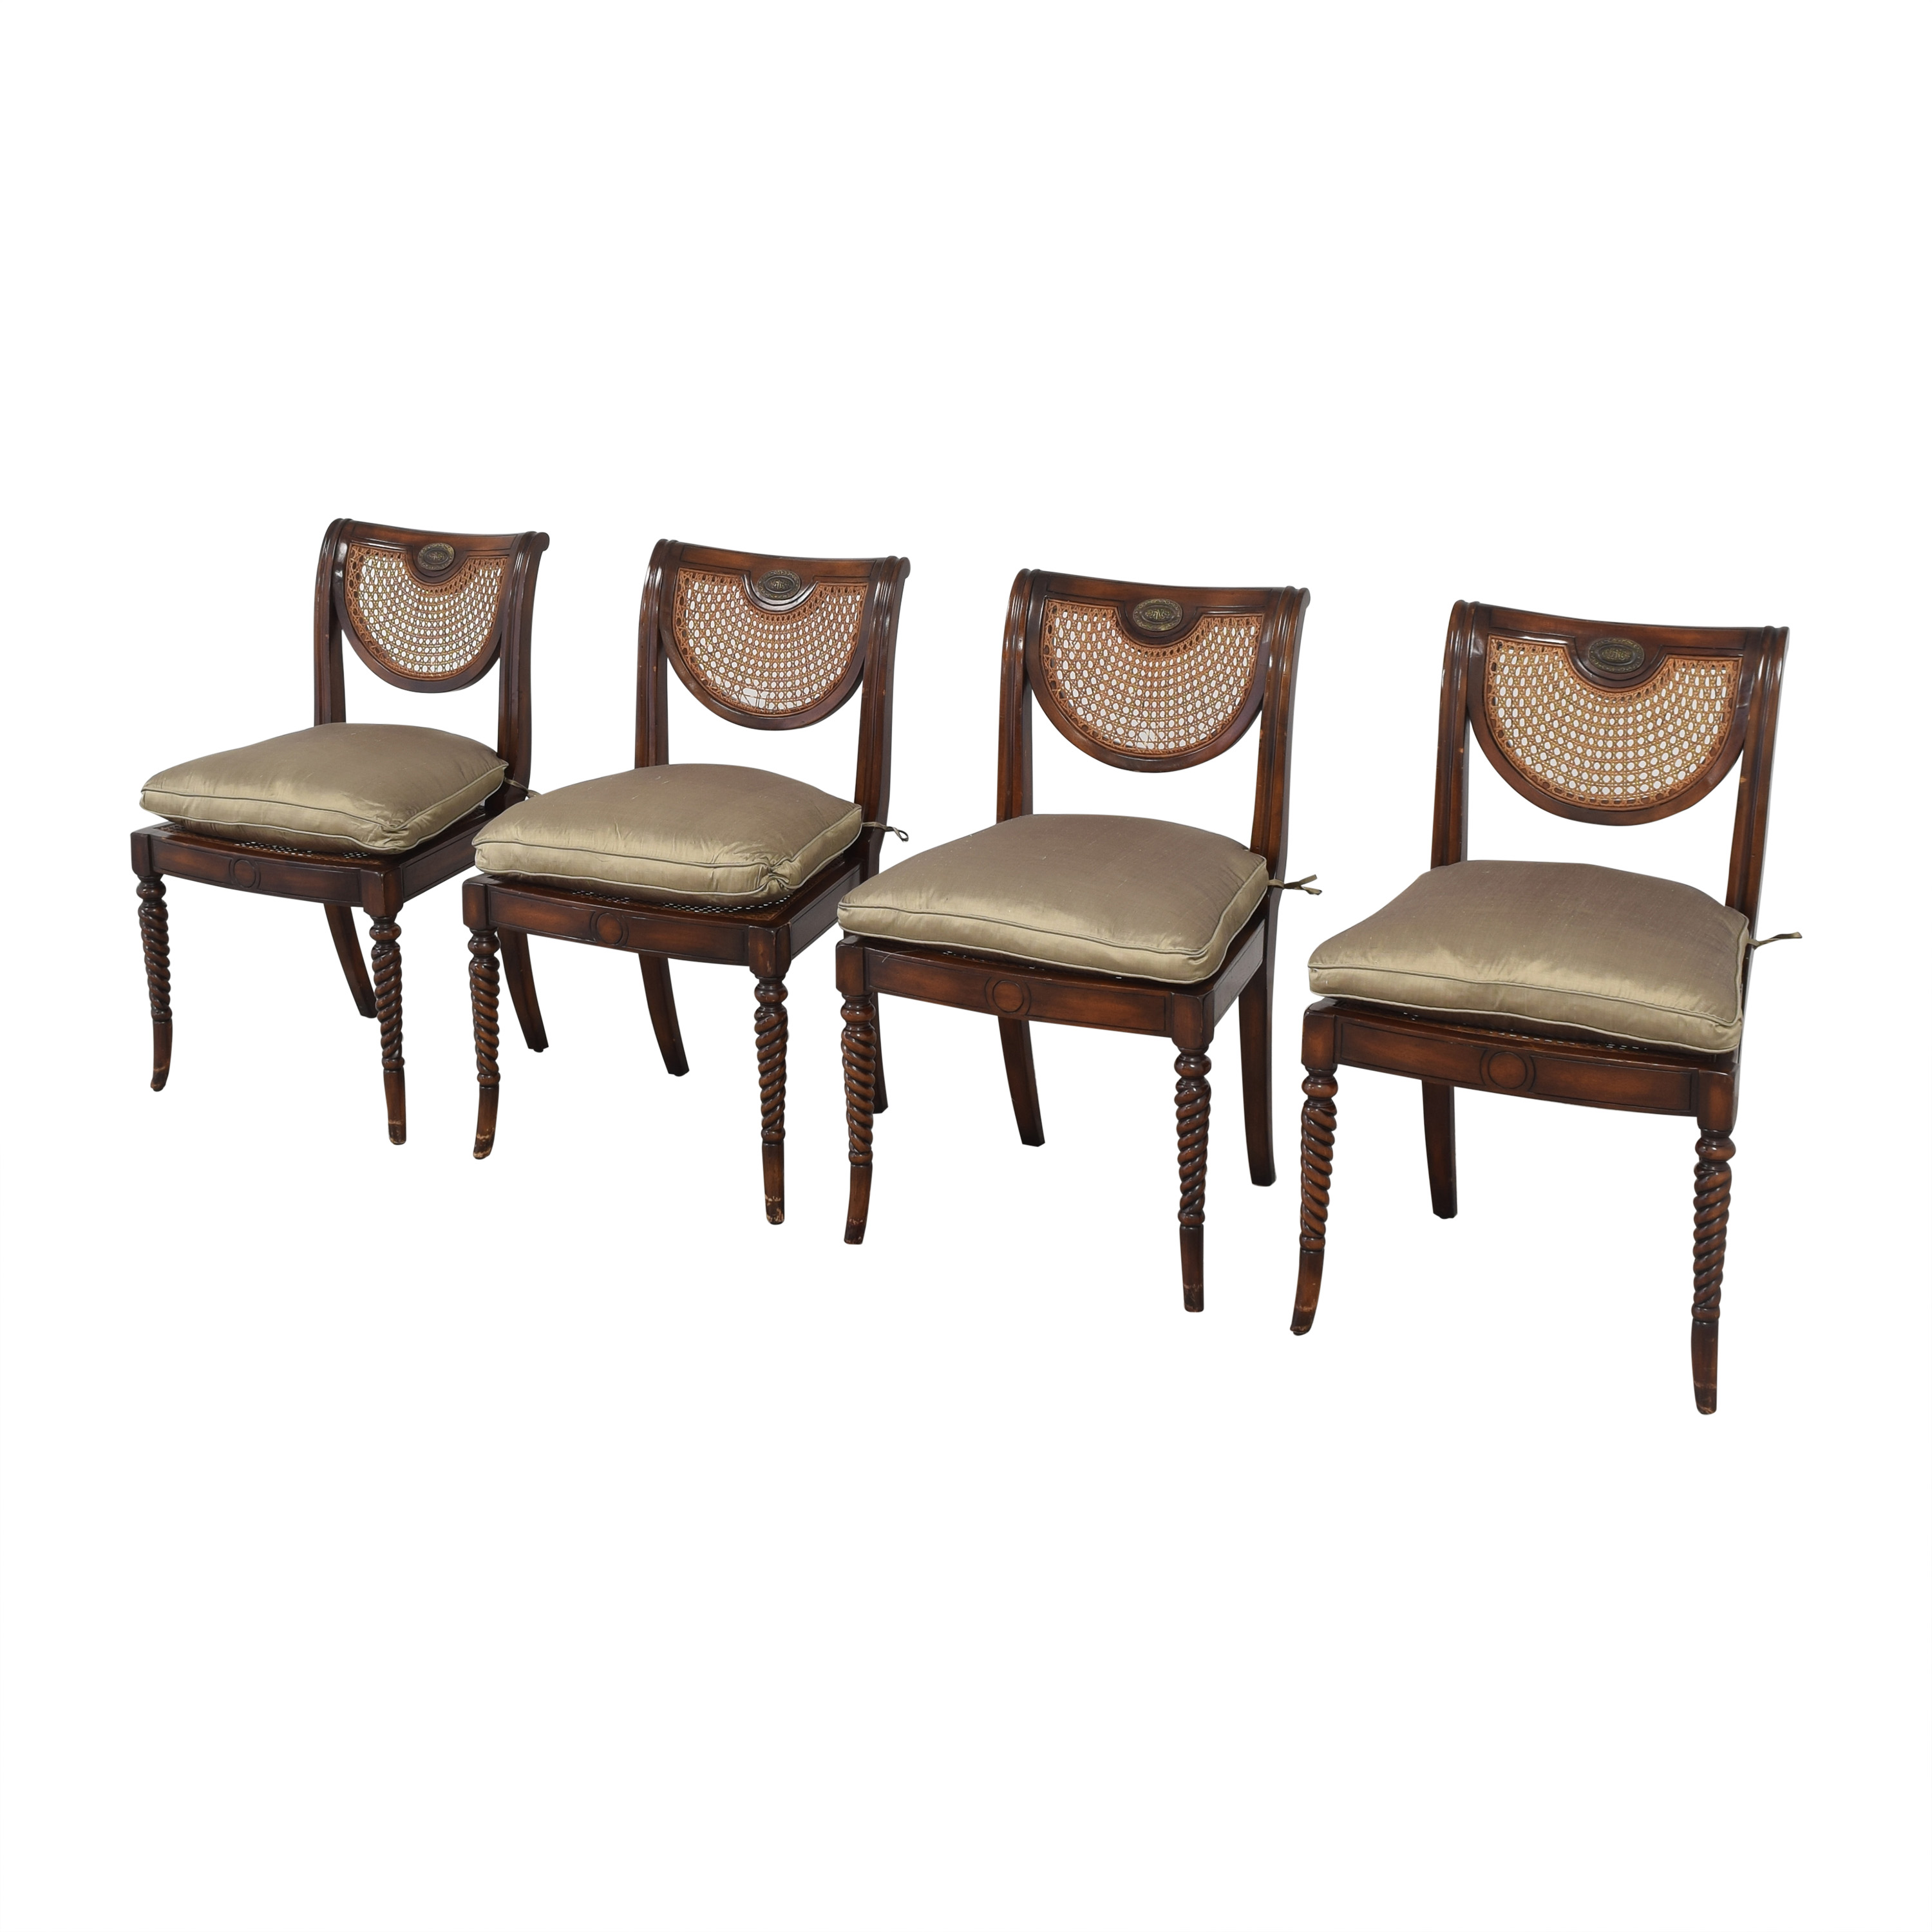 buy ABC Carpet & Home ABC Carpet & Home Dining Chairs online